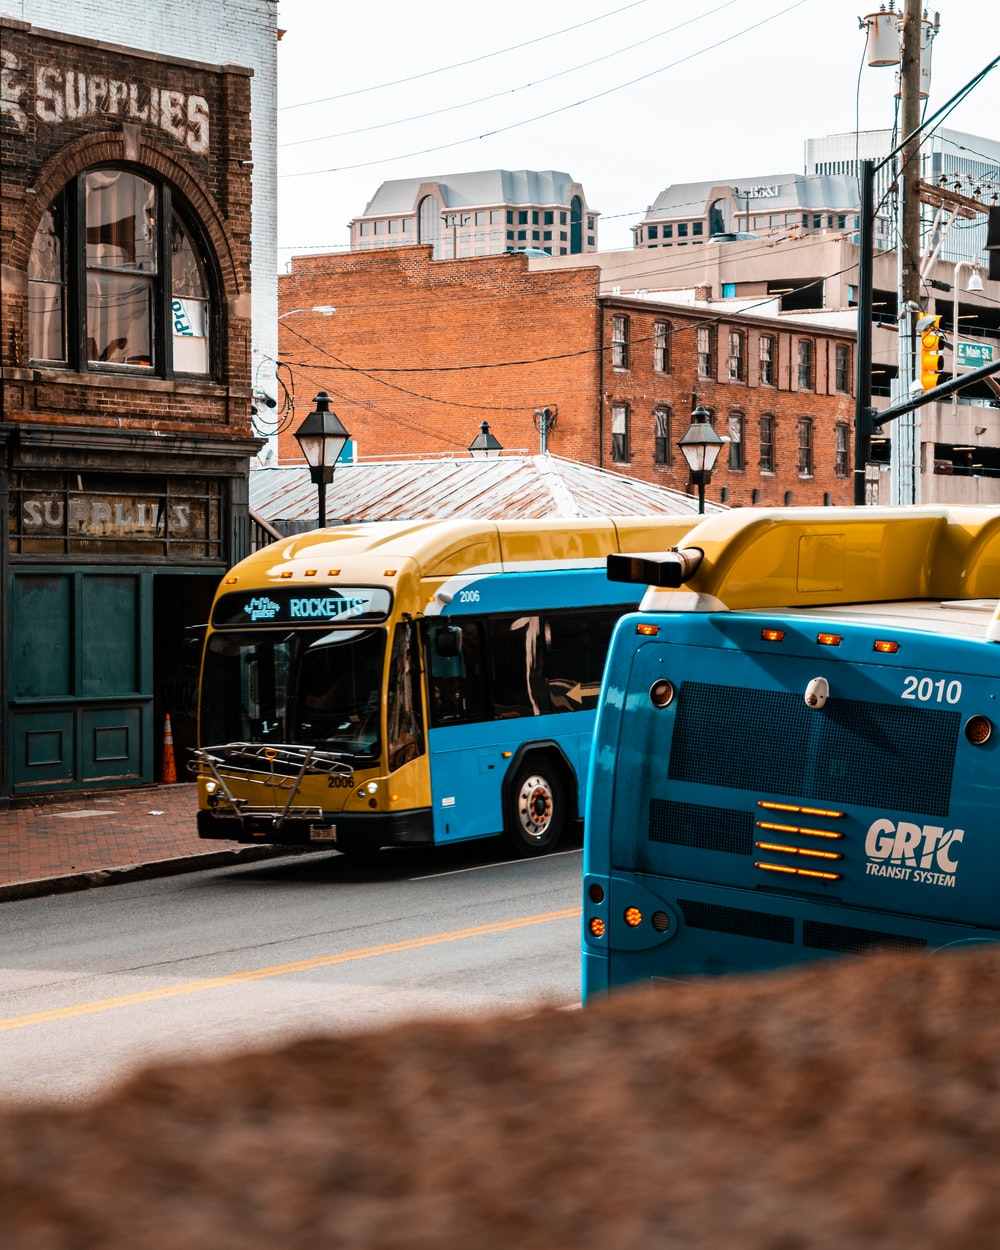 blue and yellow bus on road during daytime